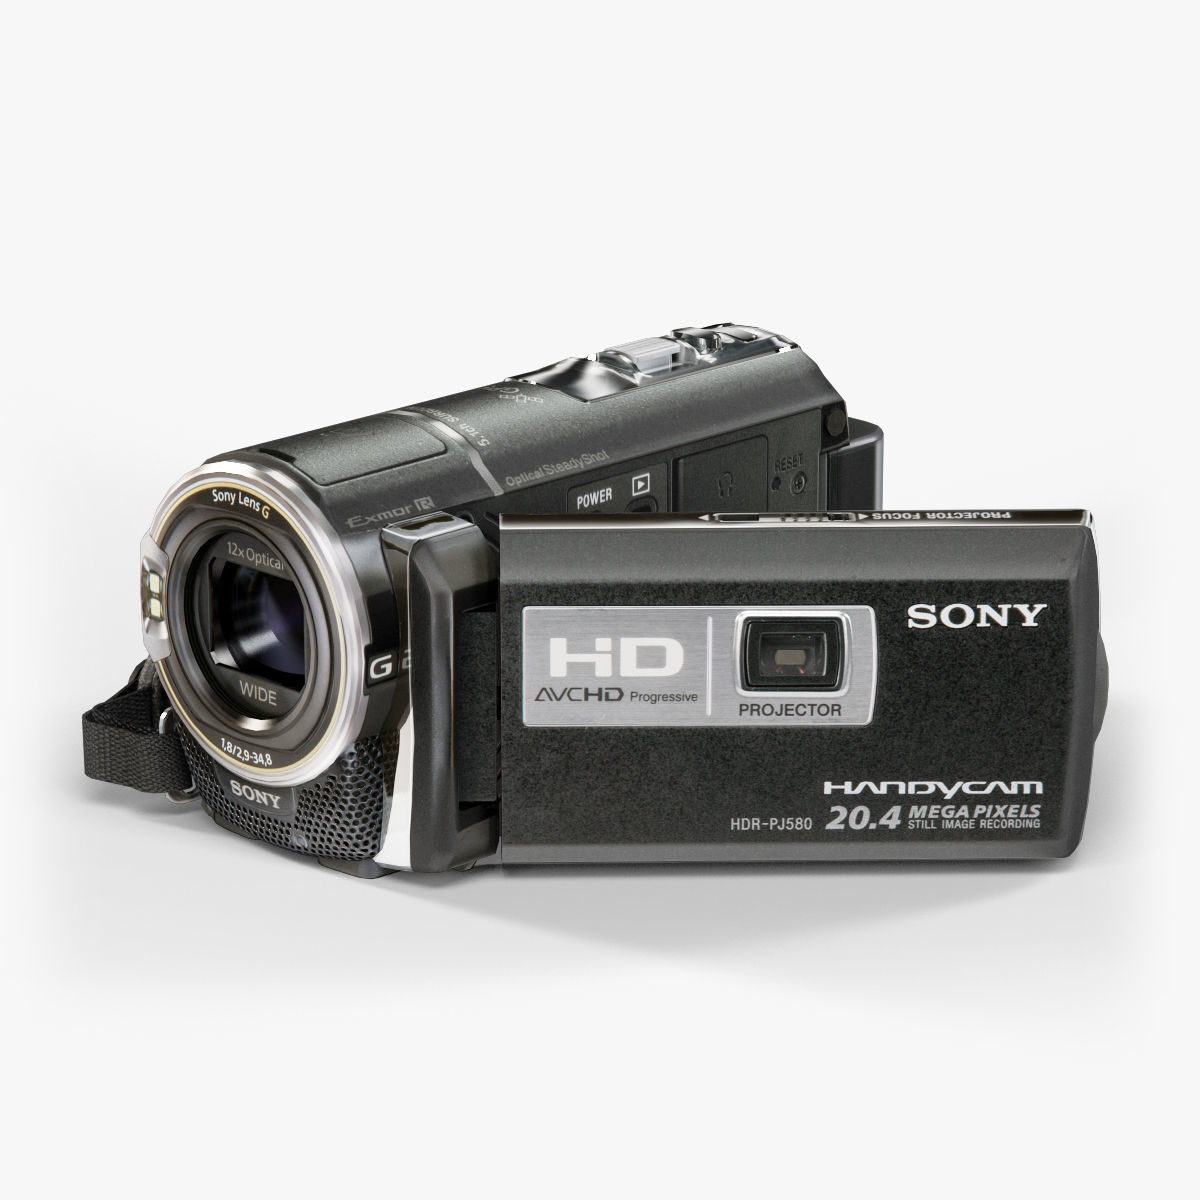 Sony HDR-PJ580 camcorder